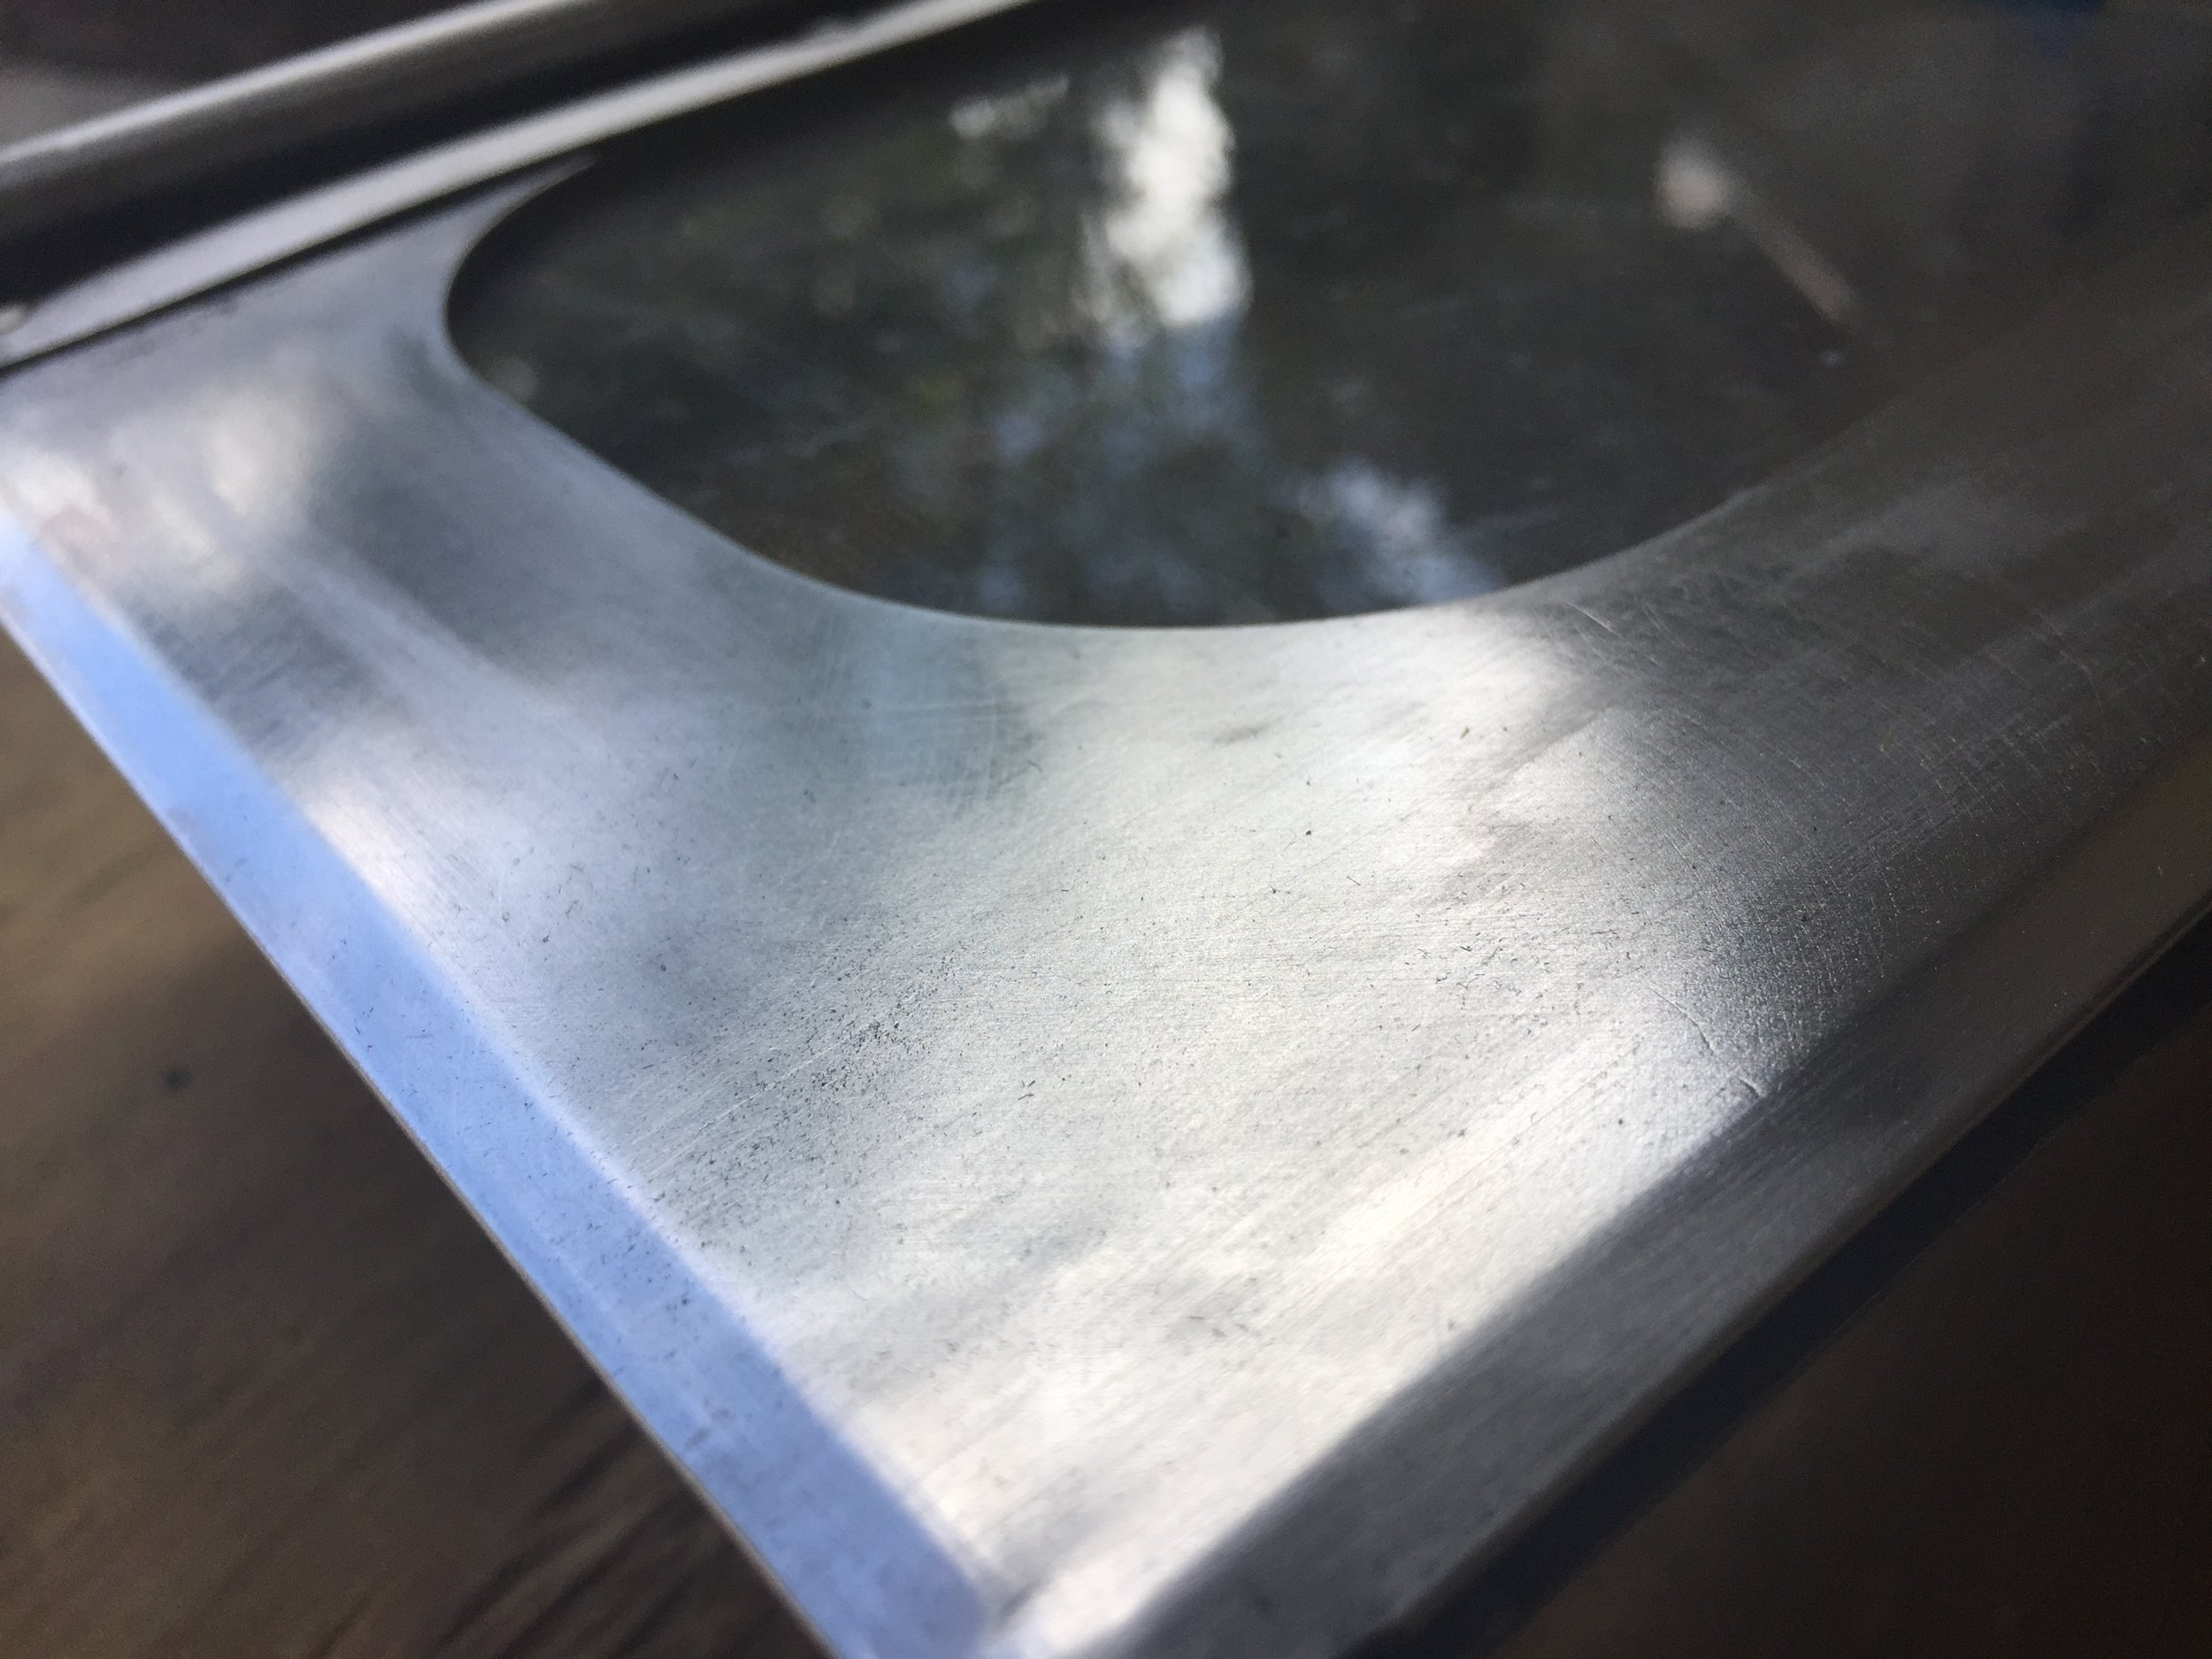 After hand polishing with steel wool